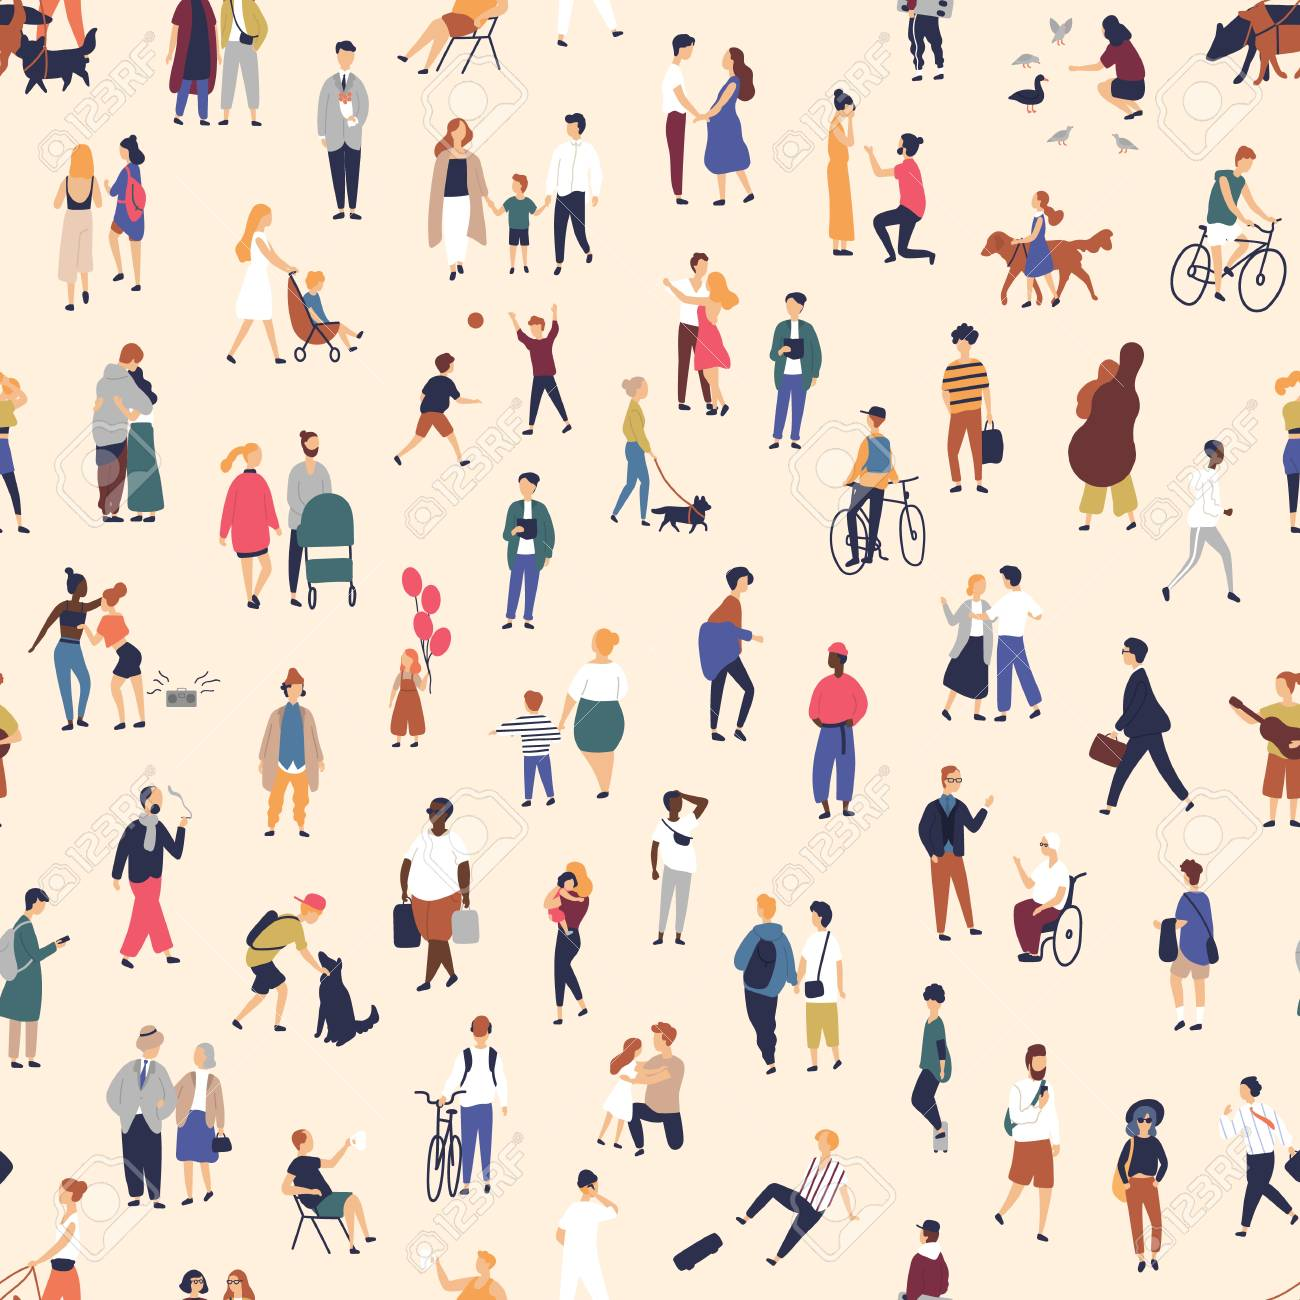 Seamless pattern with tiny people walking on street. Backdrop with men, women and children performing outdoor activity. Colorful vector illustration in flat cartoon style for wallpaper, fabric print - 117296588